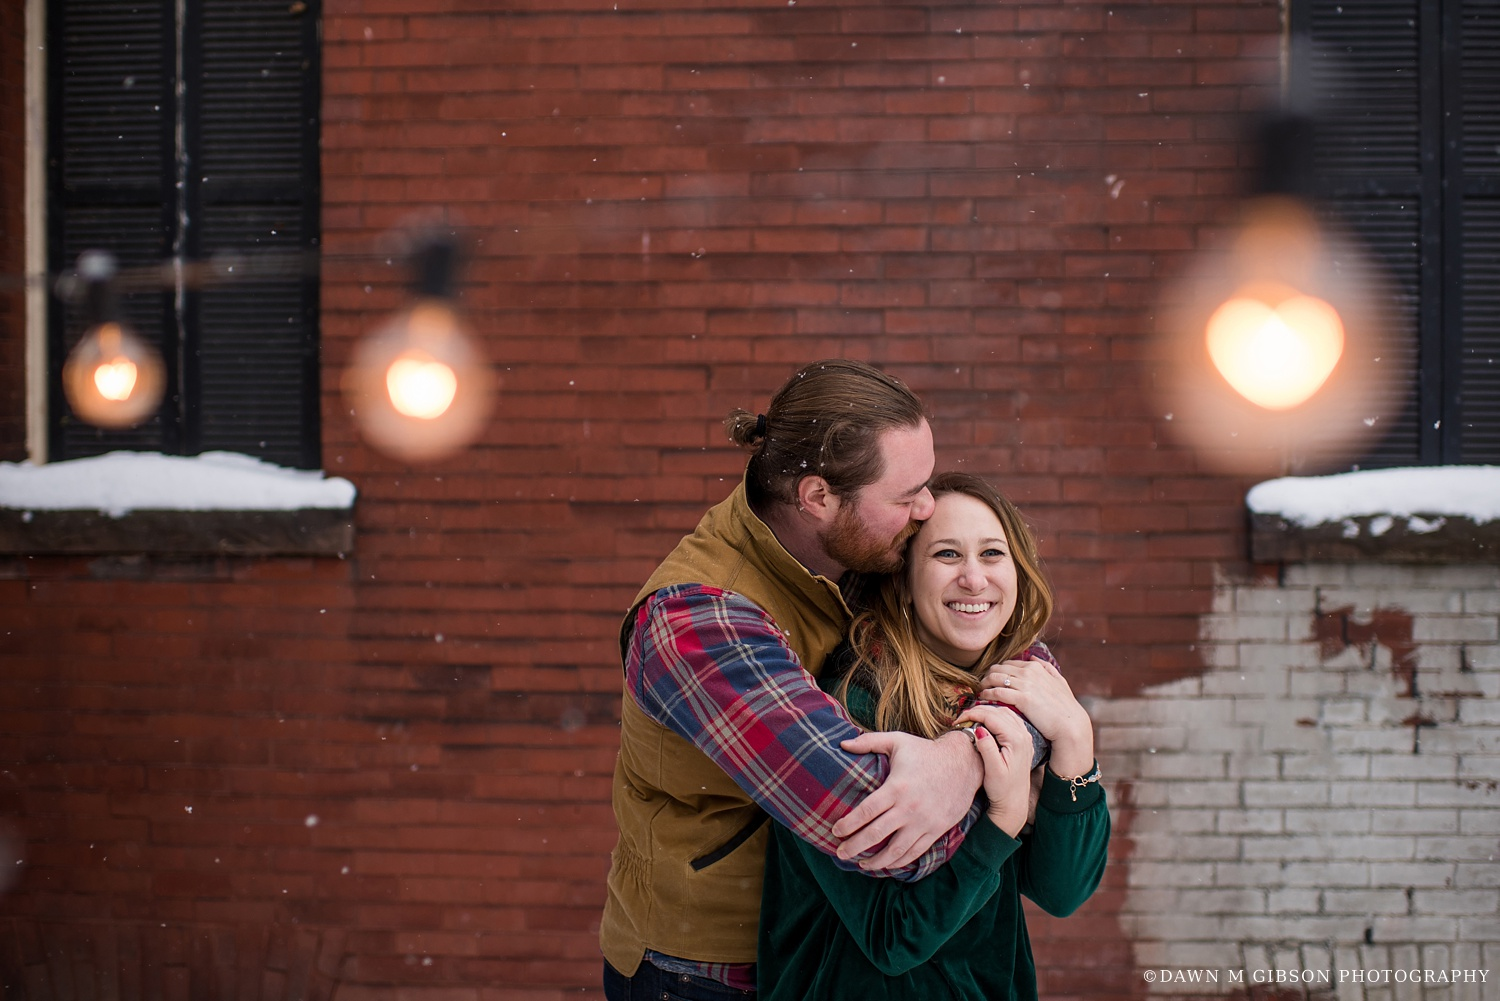 Zoe and Jon nailed their winter engagement session outfits here – right down to Zoe's red nailpolish to tie in with Jon's plaid shirt and the brick wall in their backyard. Still swooning over this one.